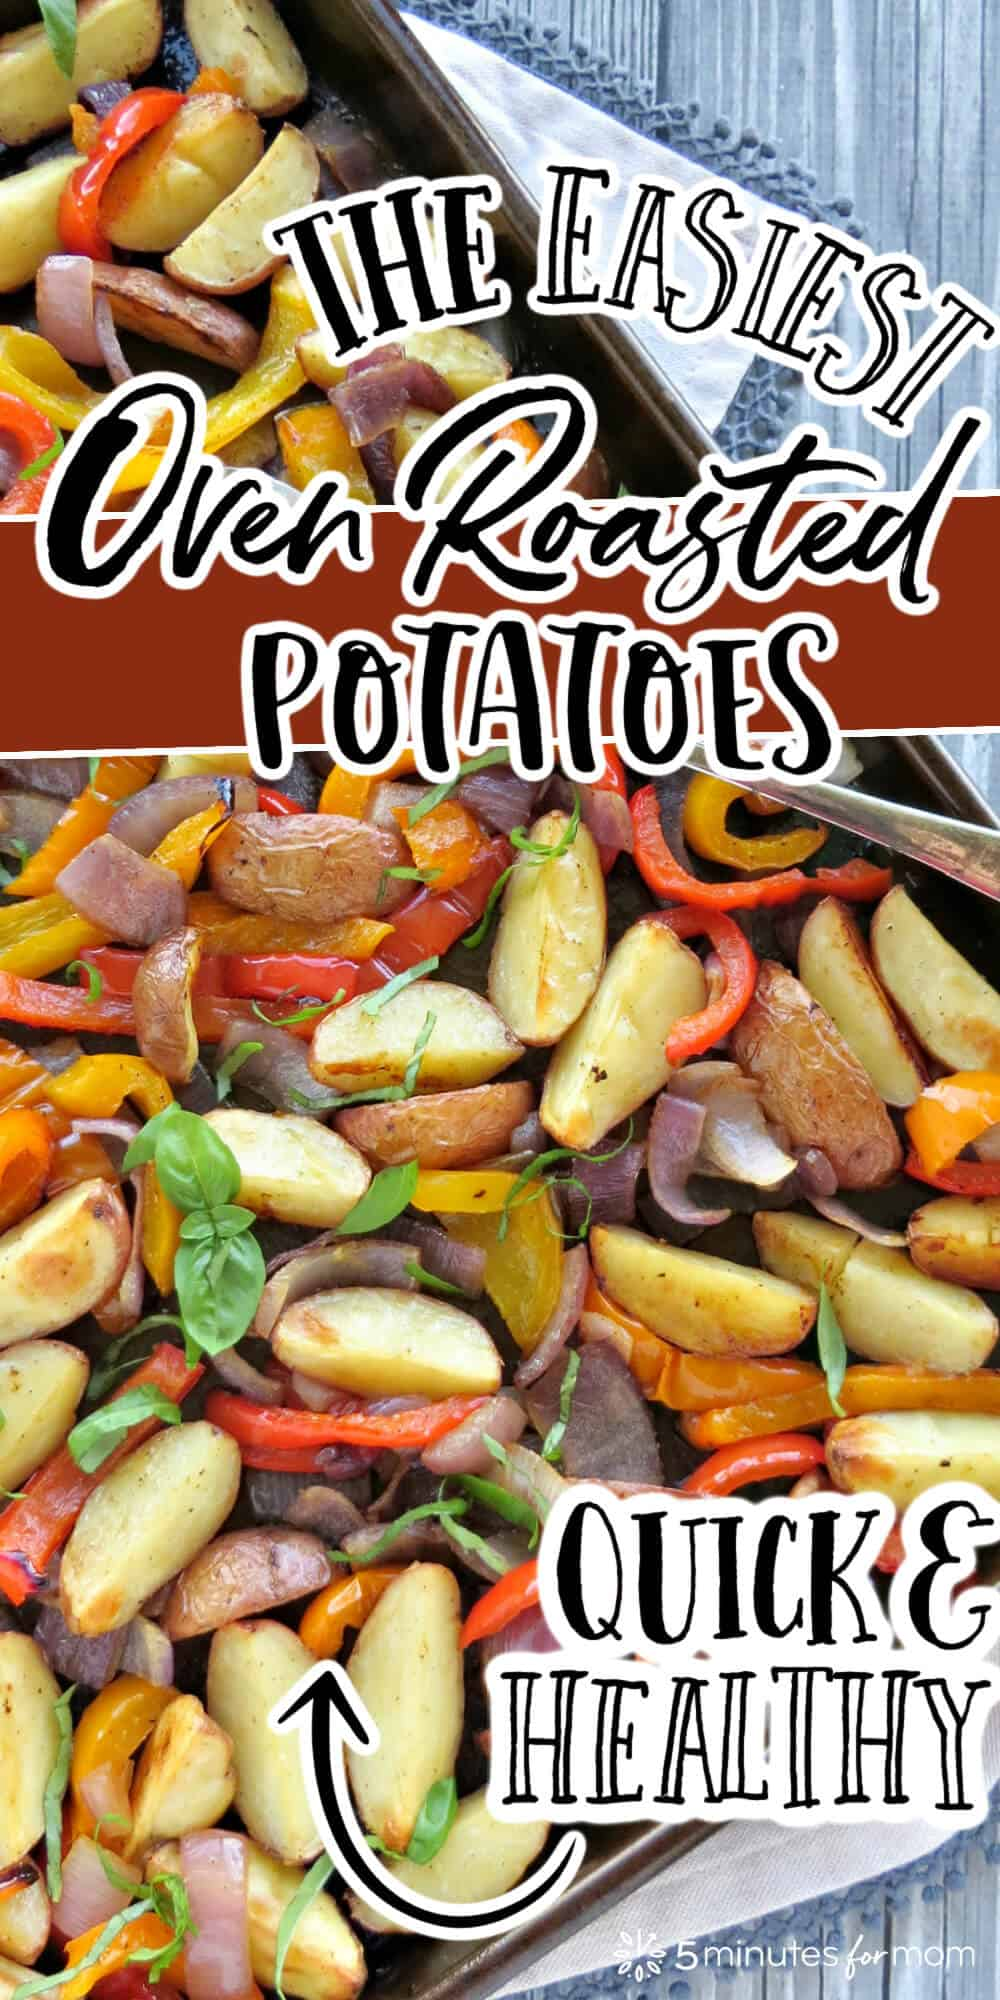 """Close up of baking sheet with roasted potatoes and red, orange and yellow peppers. Text on image reads """"The Easiest Oven Roasted Potatoes"""" and """"Quick & Healthy"""""""